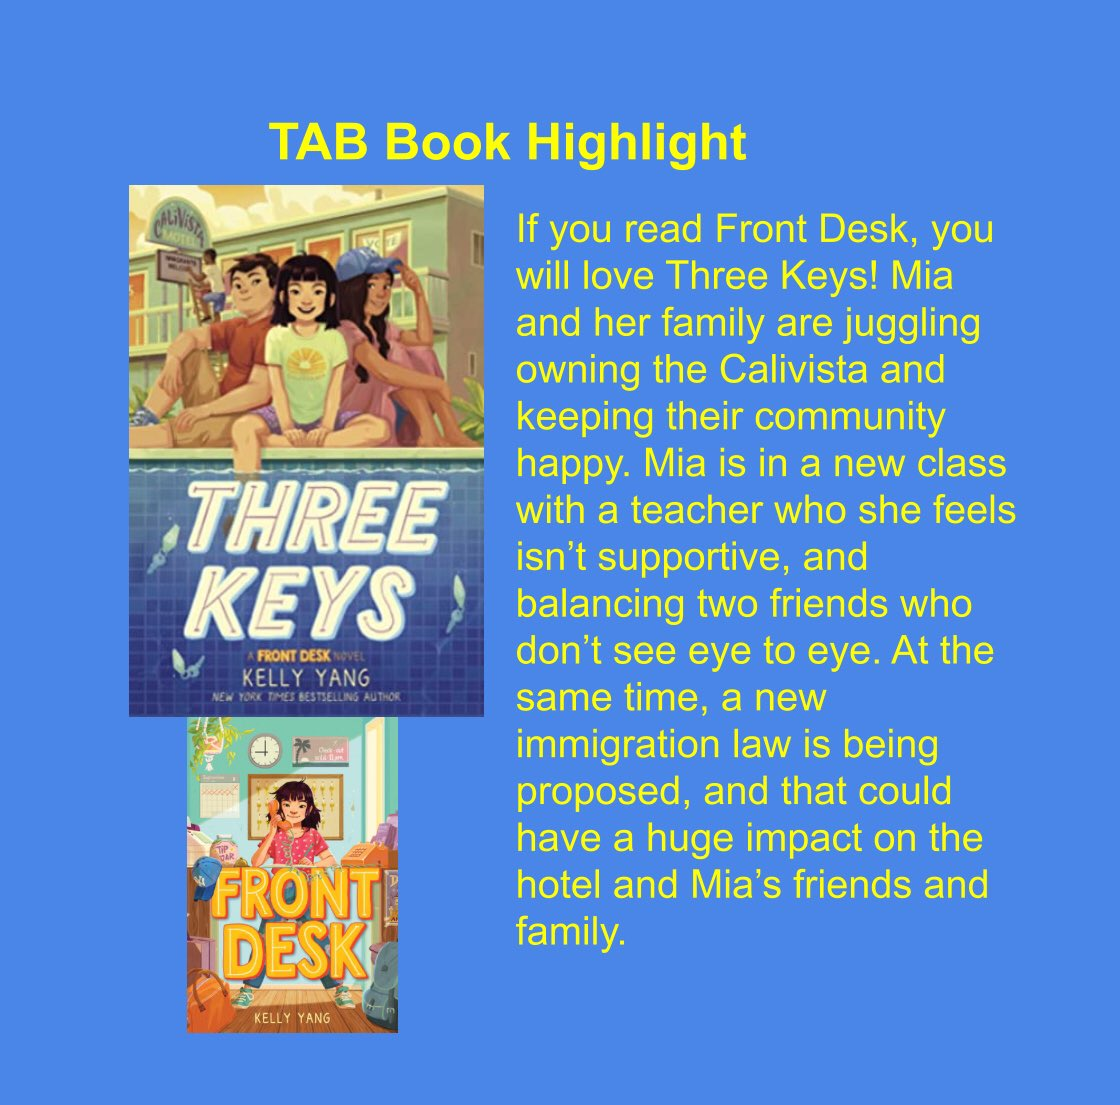 TAB starts tomorrow! We are so excited to get started. Find the link on the after school activity page, or message any librarian for help. We will meet during lunches. Here's a preview of one of this years TAB books. <a target='_blank' href='http://twitter.com/APSLibrarians'>@APSLibrarians</a> <a target='_blank' href='http://twitter.com/kellyyanghk'>@kellyyanghk</a> <a target='_blank' href='http://twitter.com/ArlingtonVALib'>@ArlingtonVALib</a> <a target='_blank' href='http://twitter.com/JeffersonIBMYP'>@JeffersonIBMYP</a> <a target='_blank' href='https://t.co/IEvFT7ECm6'>https://t.co/IEvFT7ECm6</a>